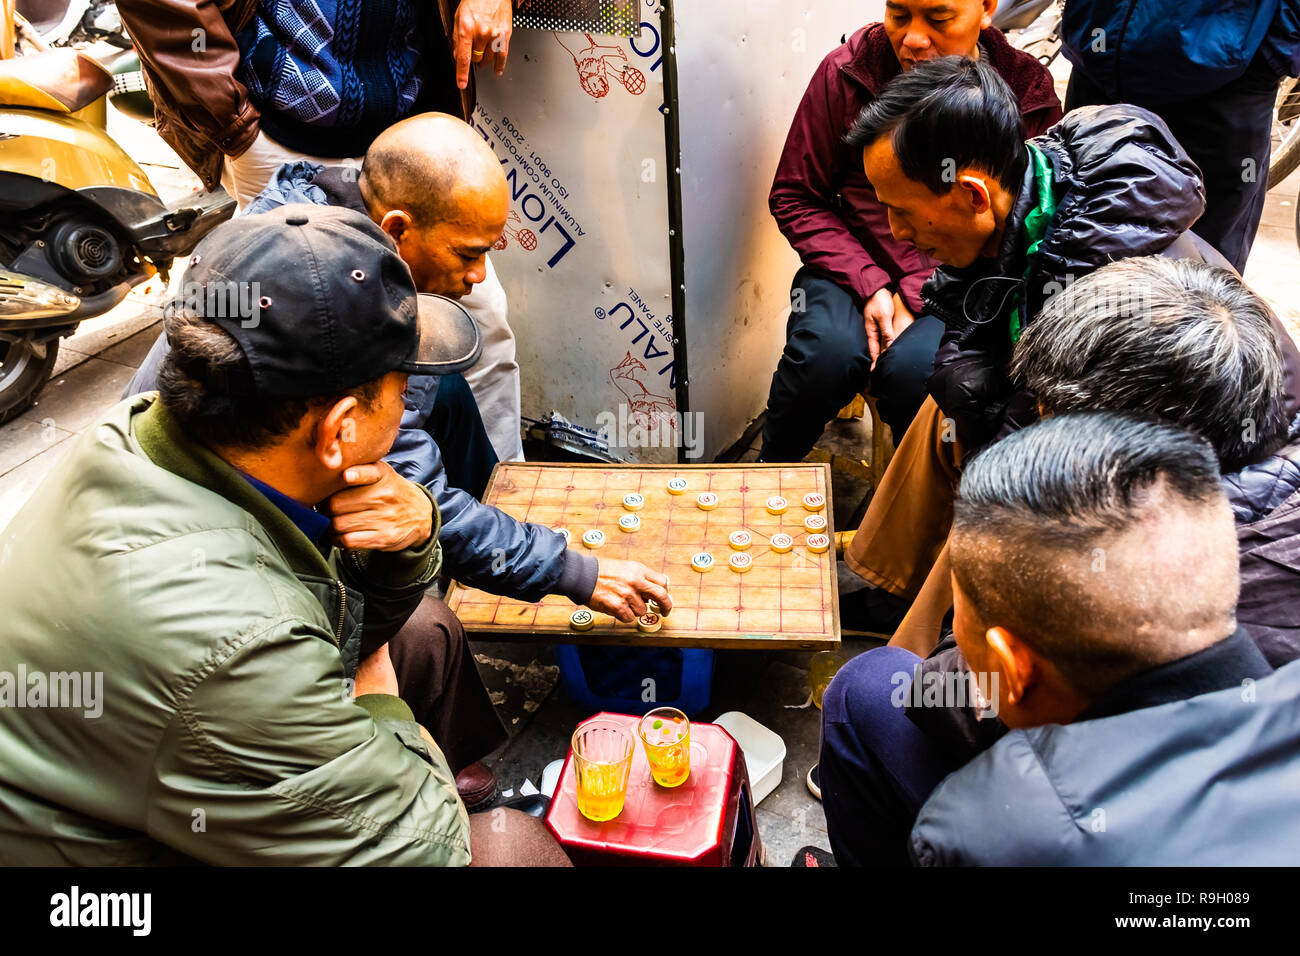 Hanoi, Vietnam - Feb 13 2018 : Two men playing strategic board game for two players called go in the streets of Hanoi. Stock Photo